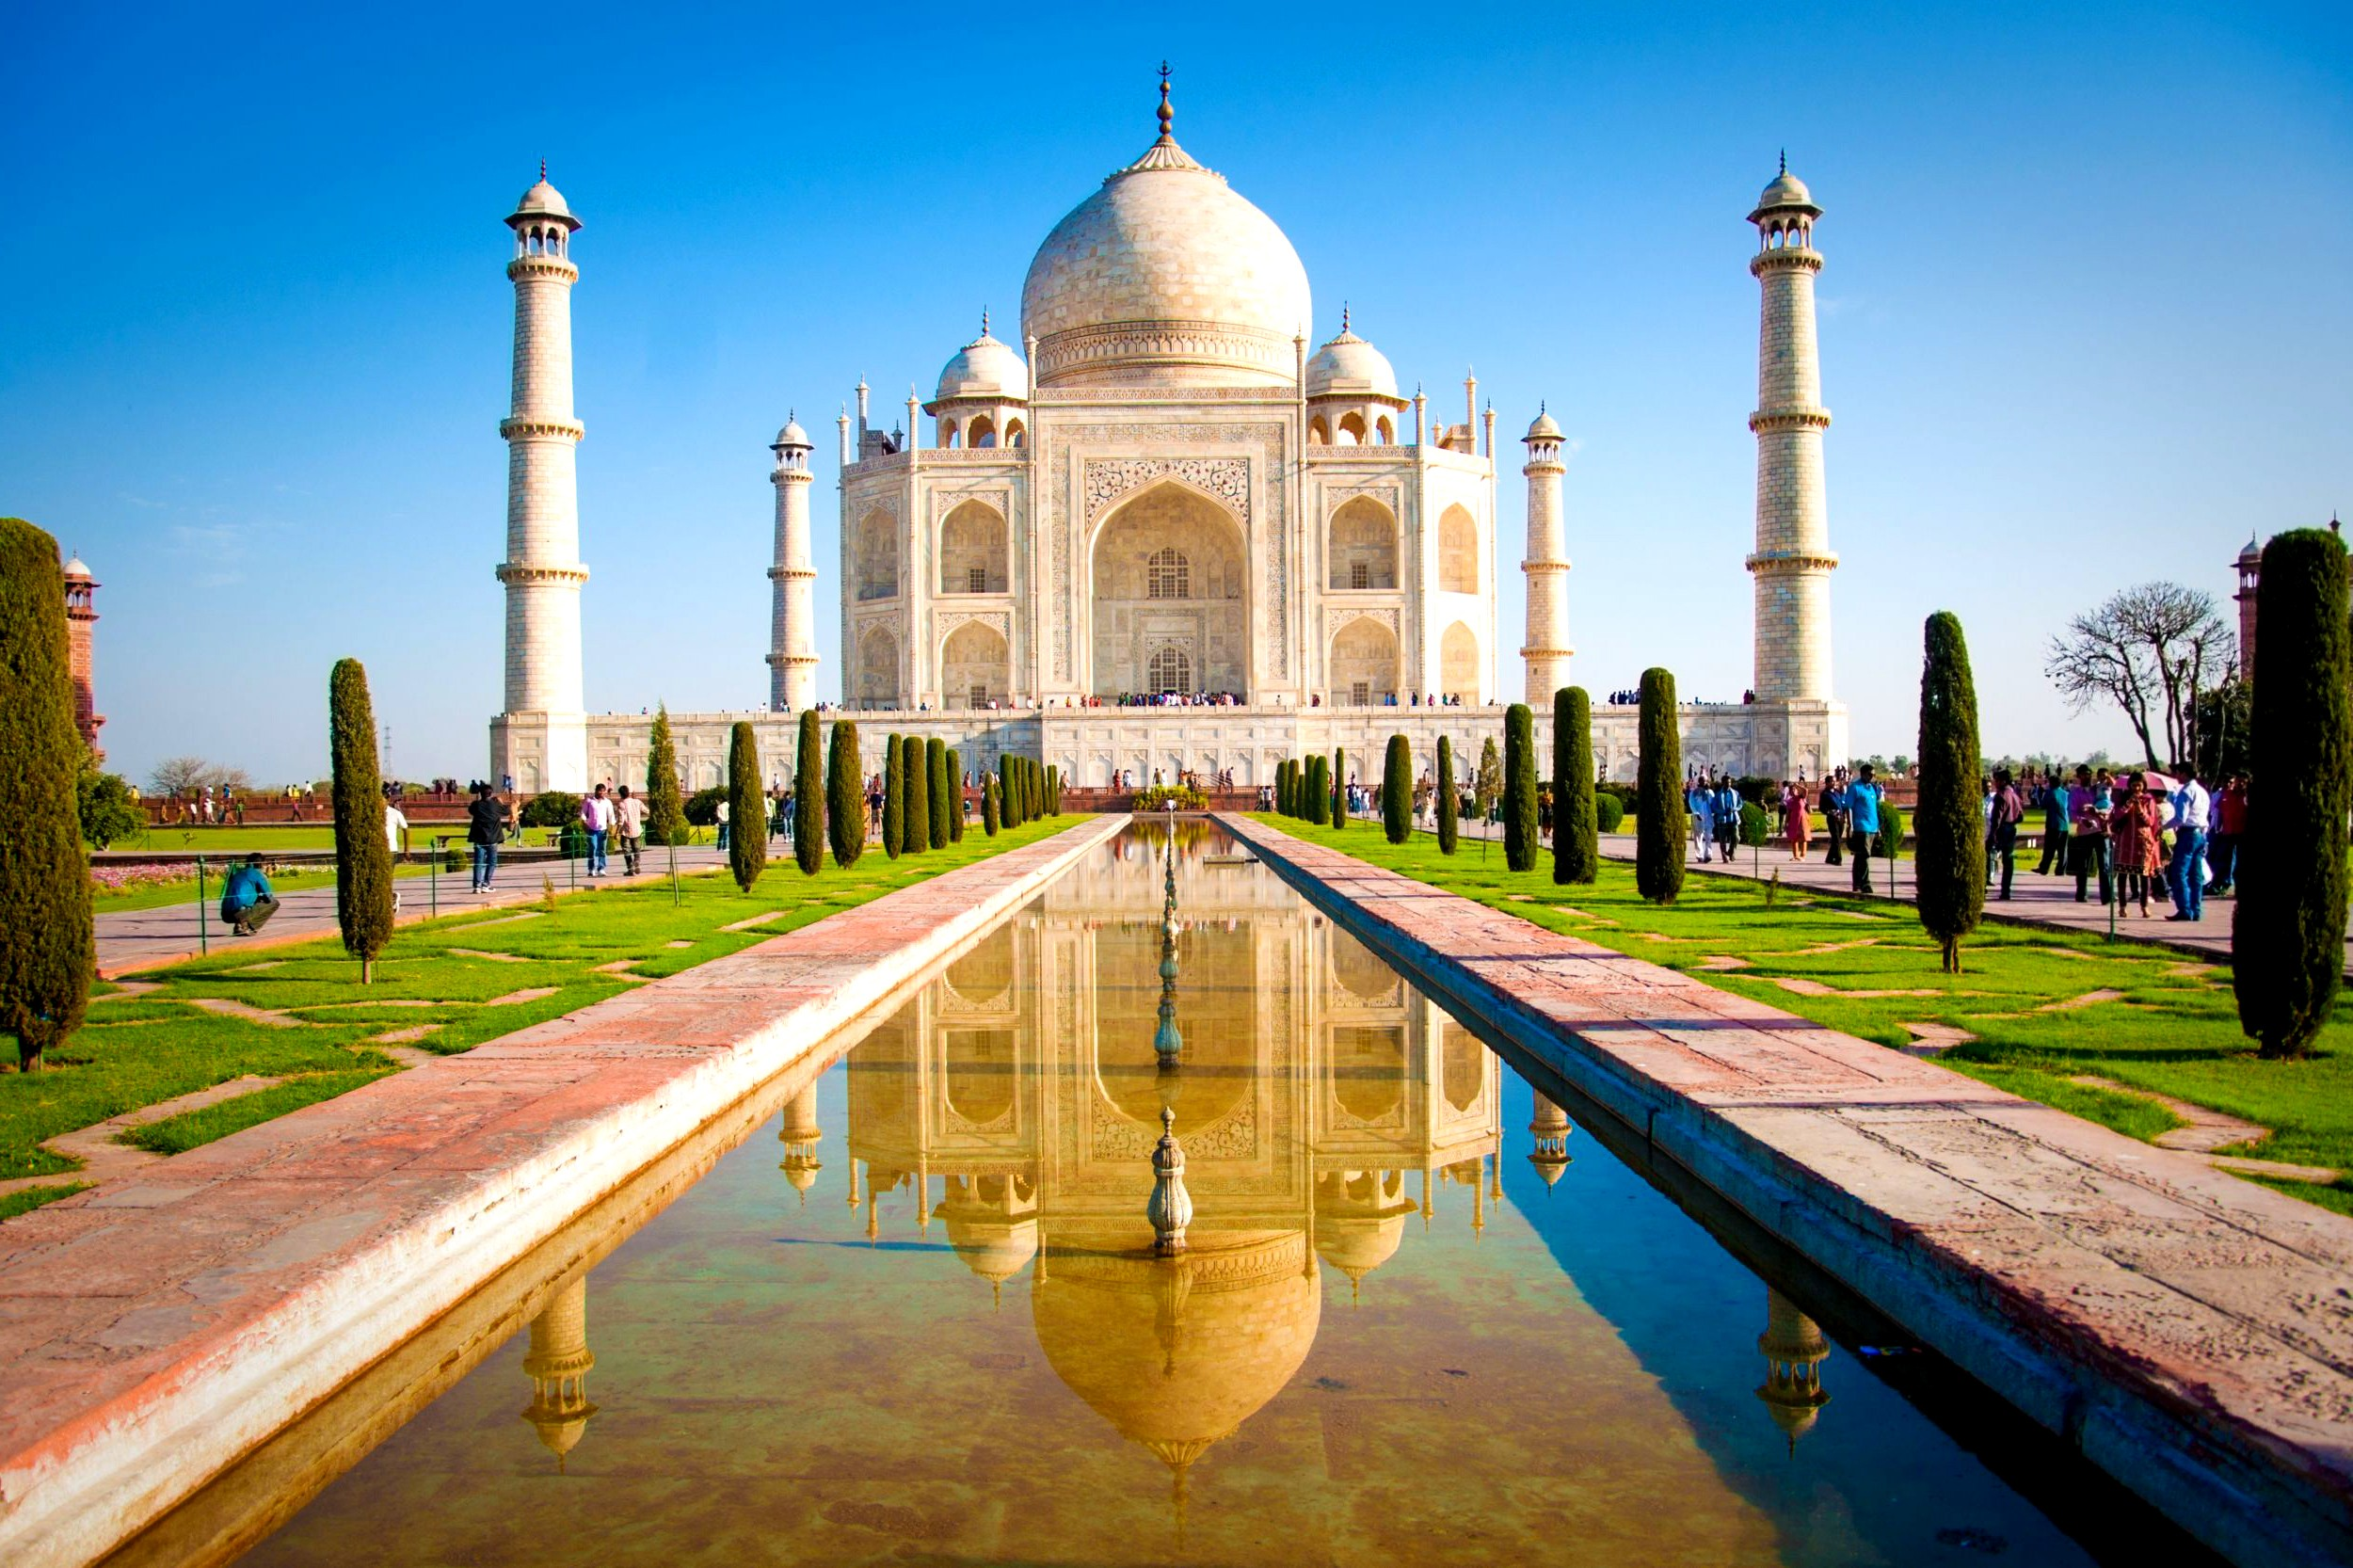 Taj Mahal and other monuments will remain closed until further notice